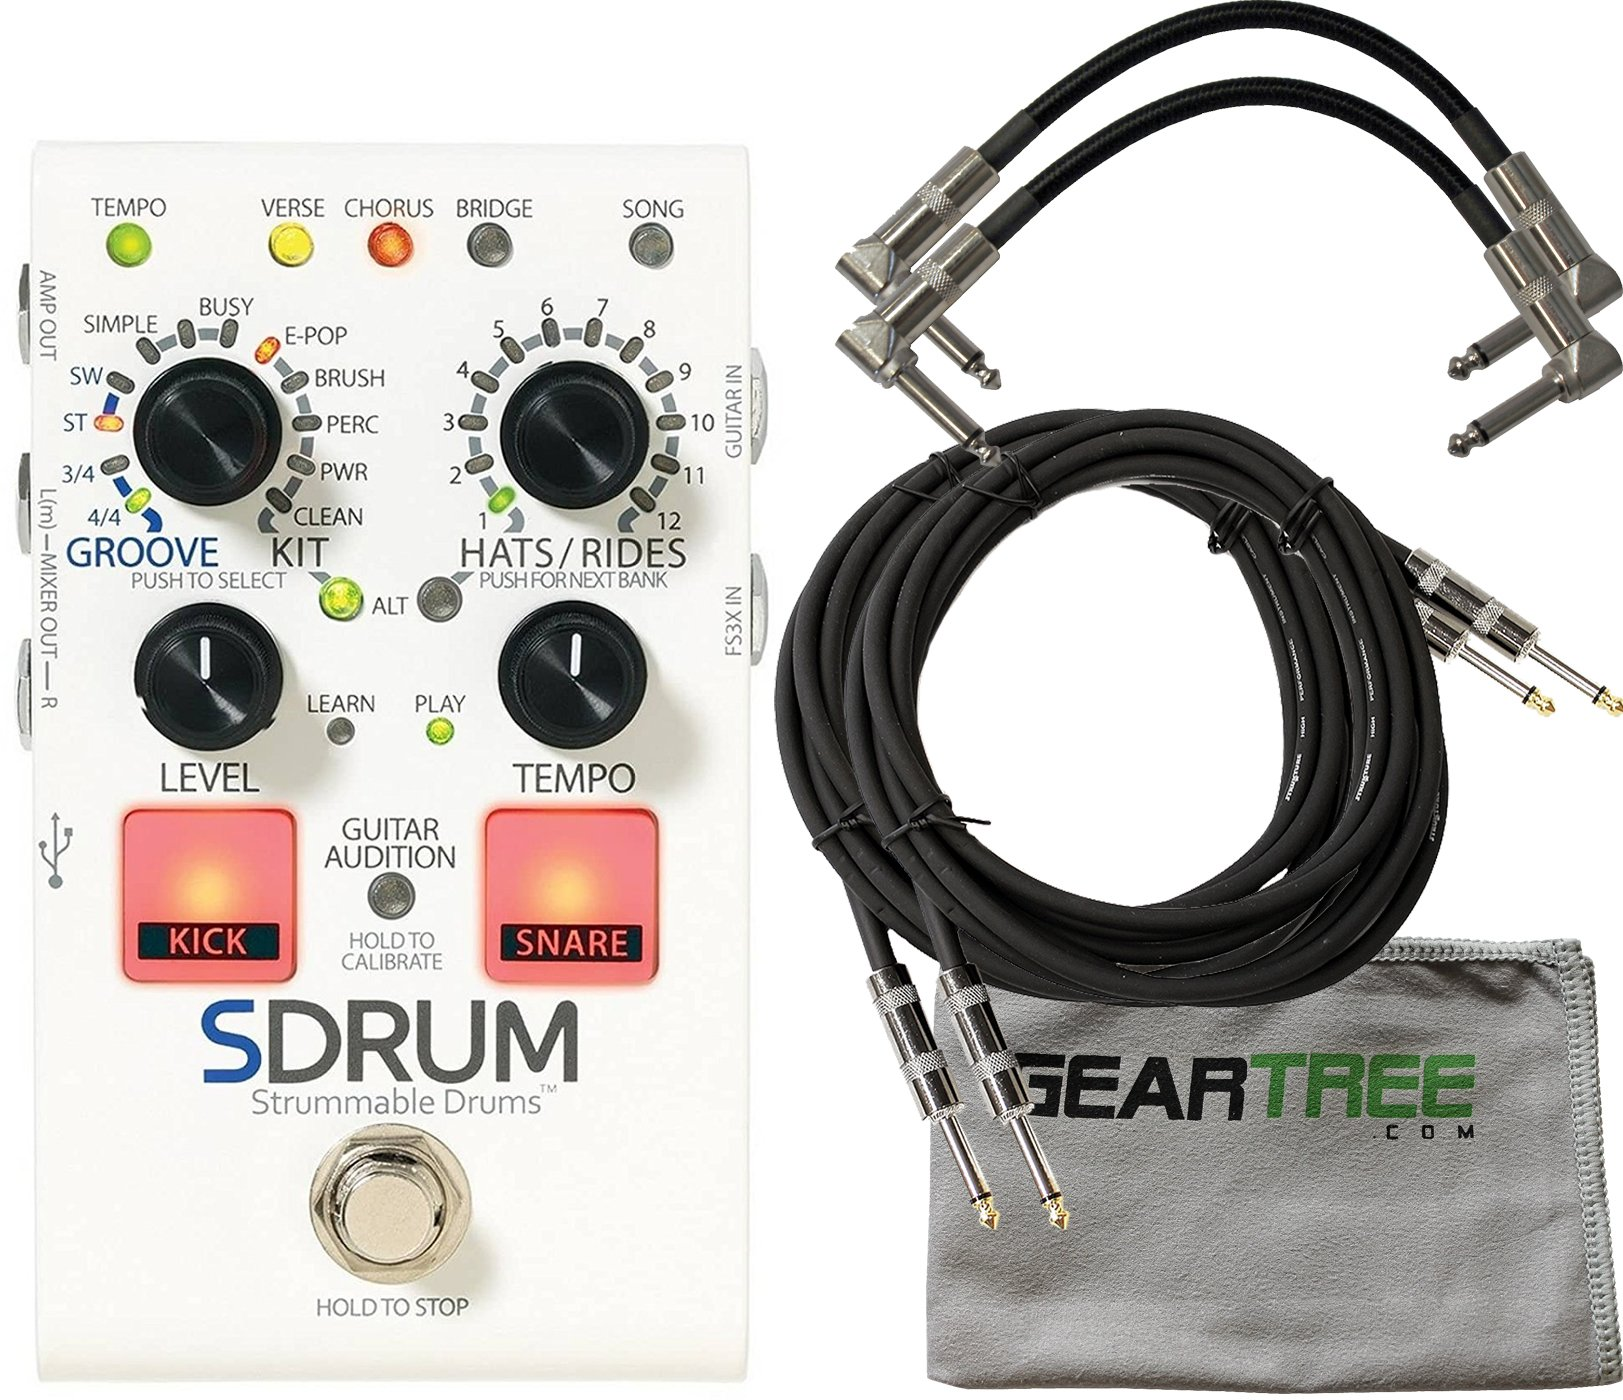 Digitech SDRUM Strummable Drums Automatic Drummer Pedal w/ Cloth and 4 Cables